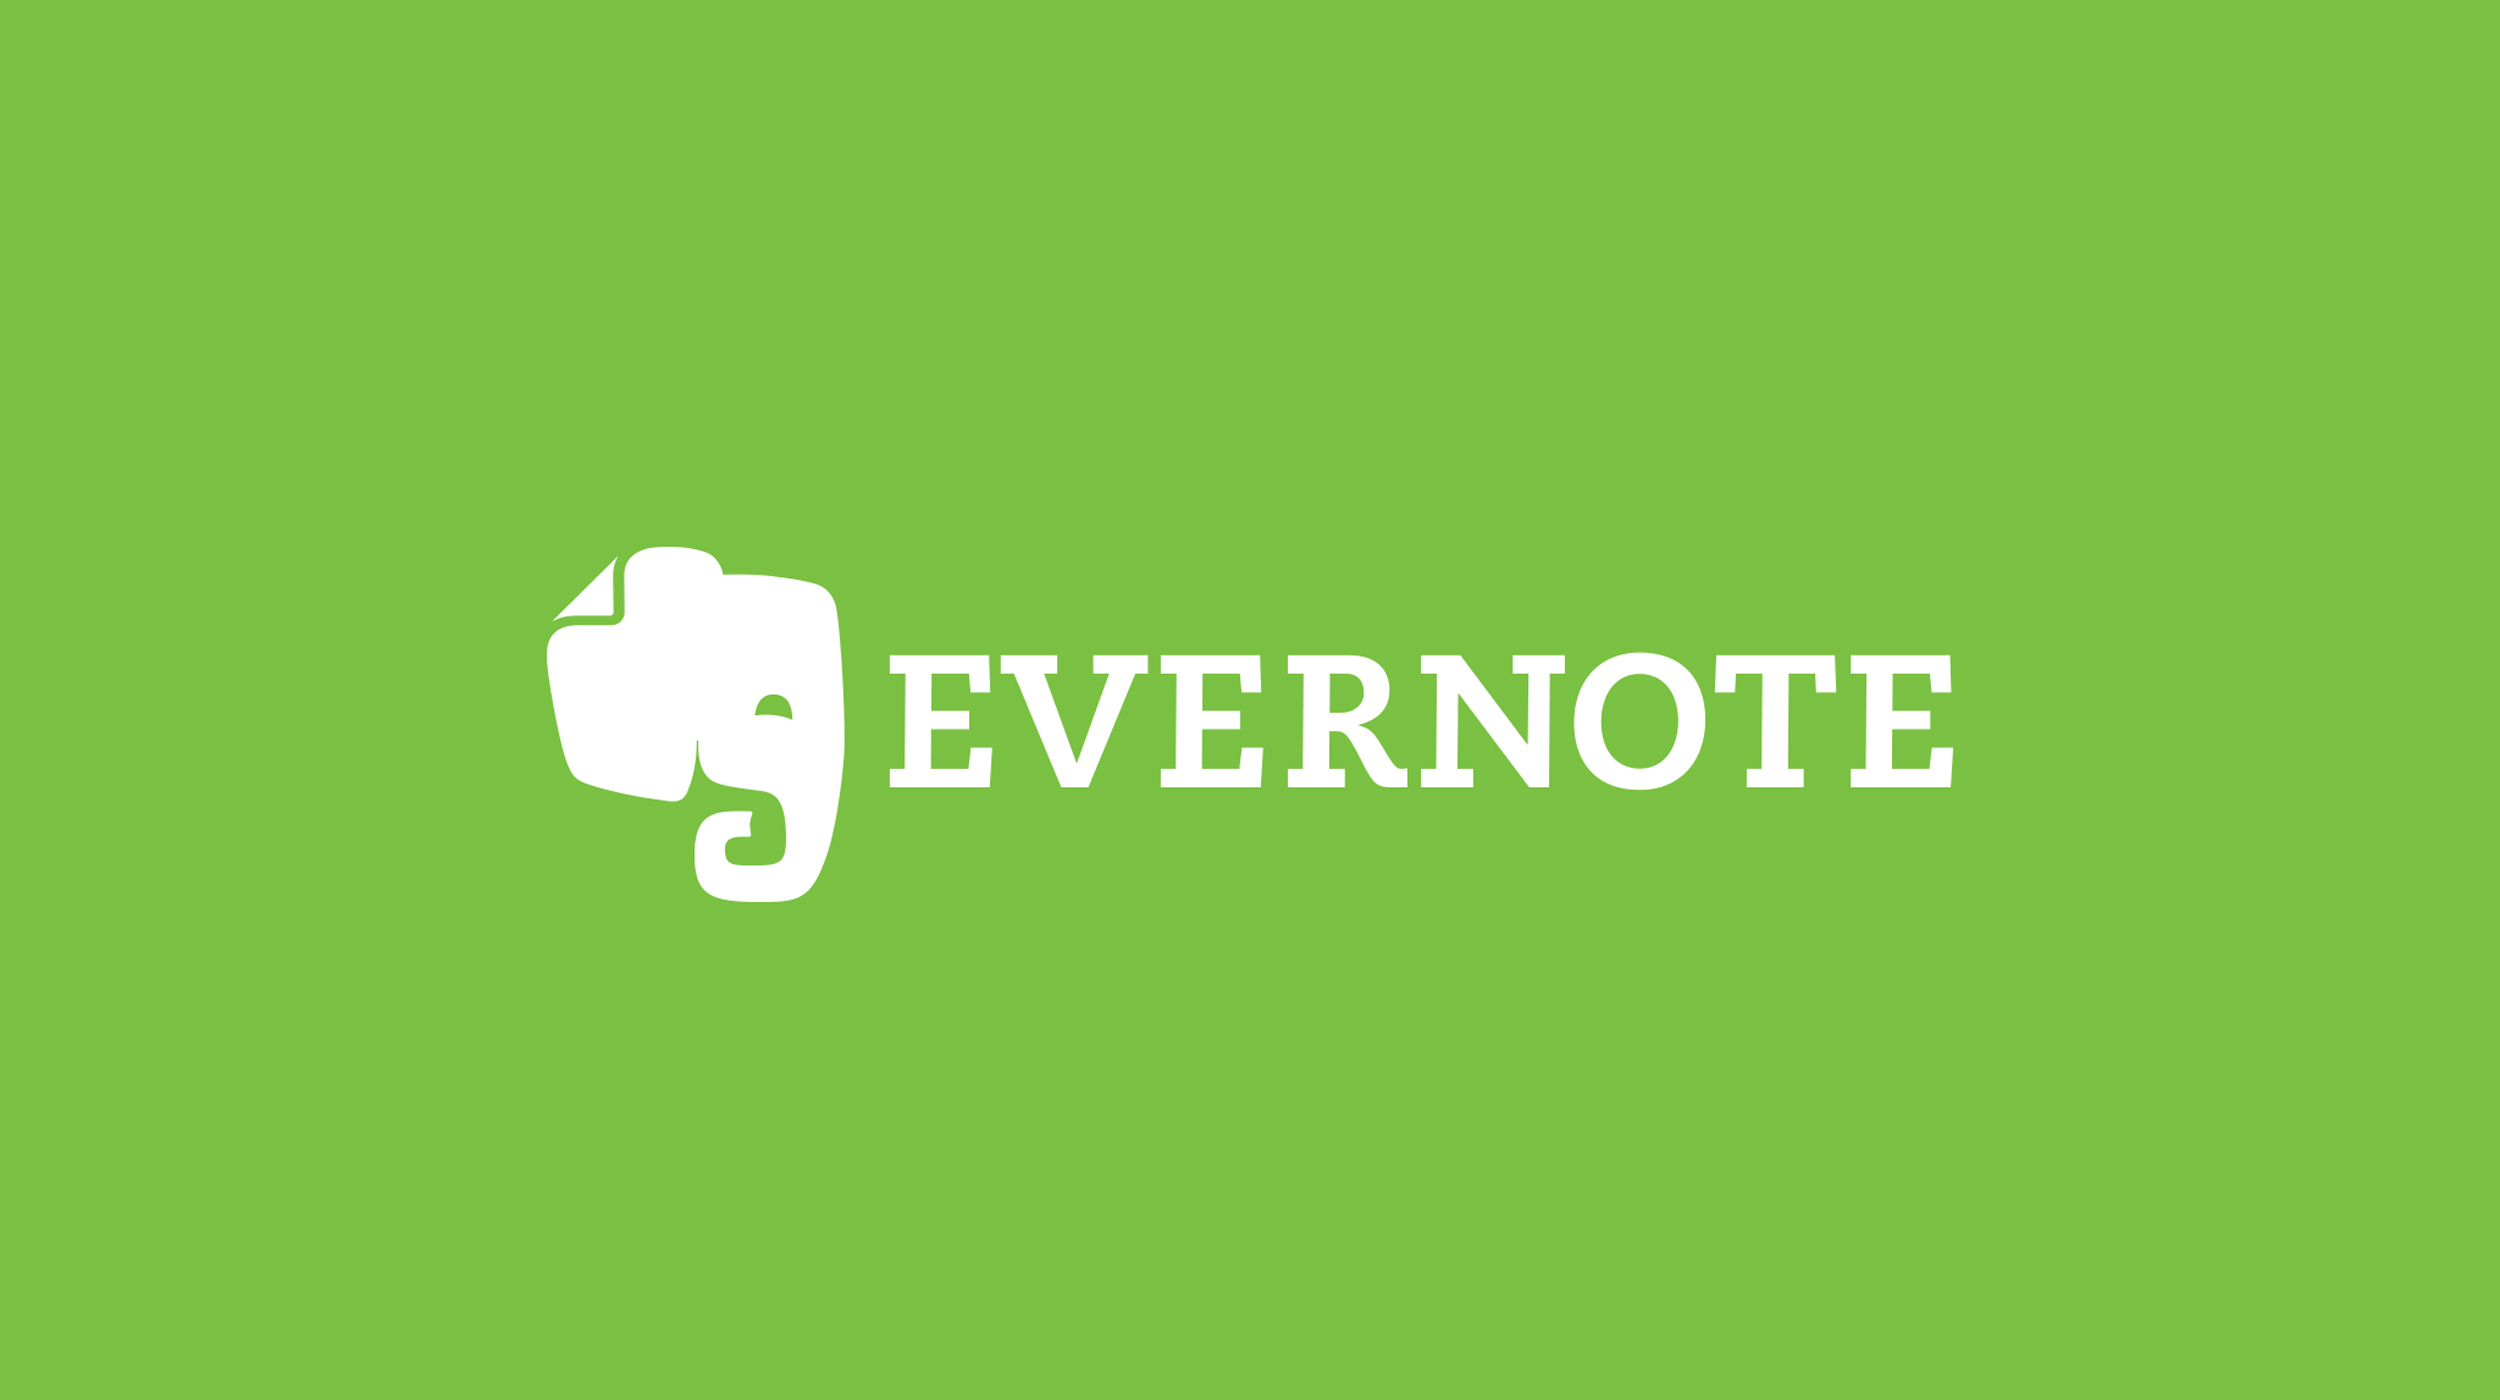 How to stay productive with more apps from Evernote